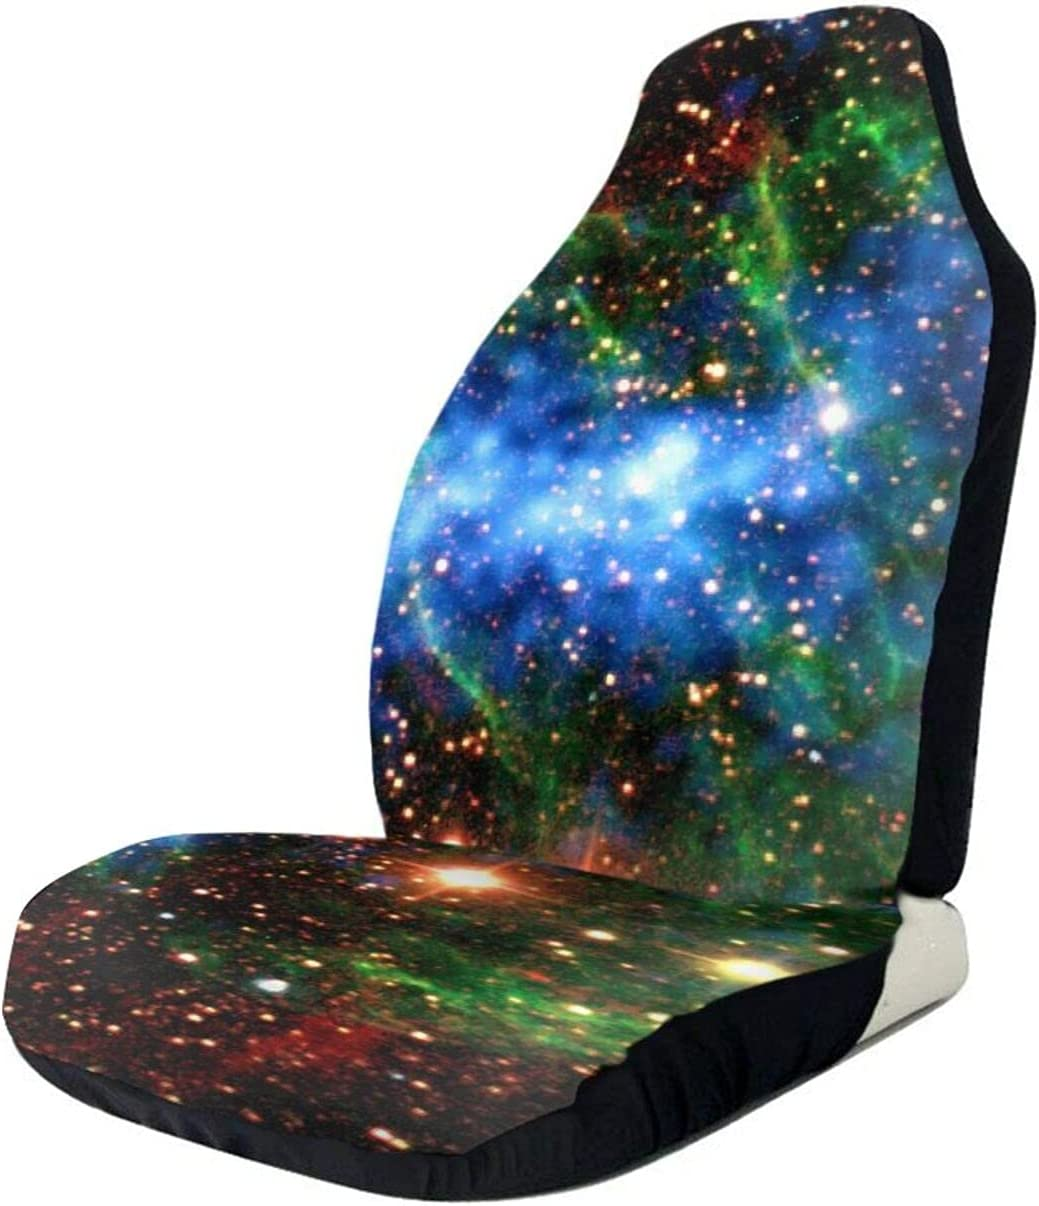 Car Seat Covers Bombing new work Planet Myth Online limited product Front 1 Vehicle Pcs